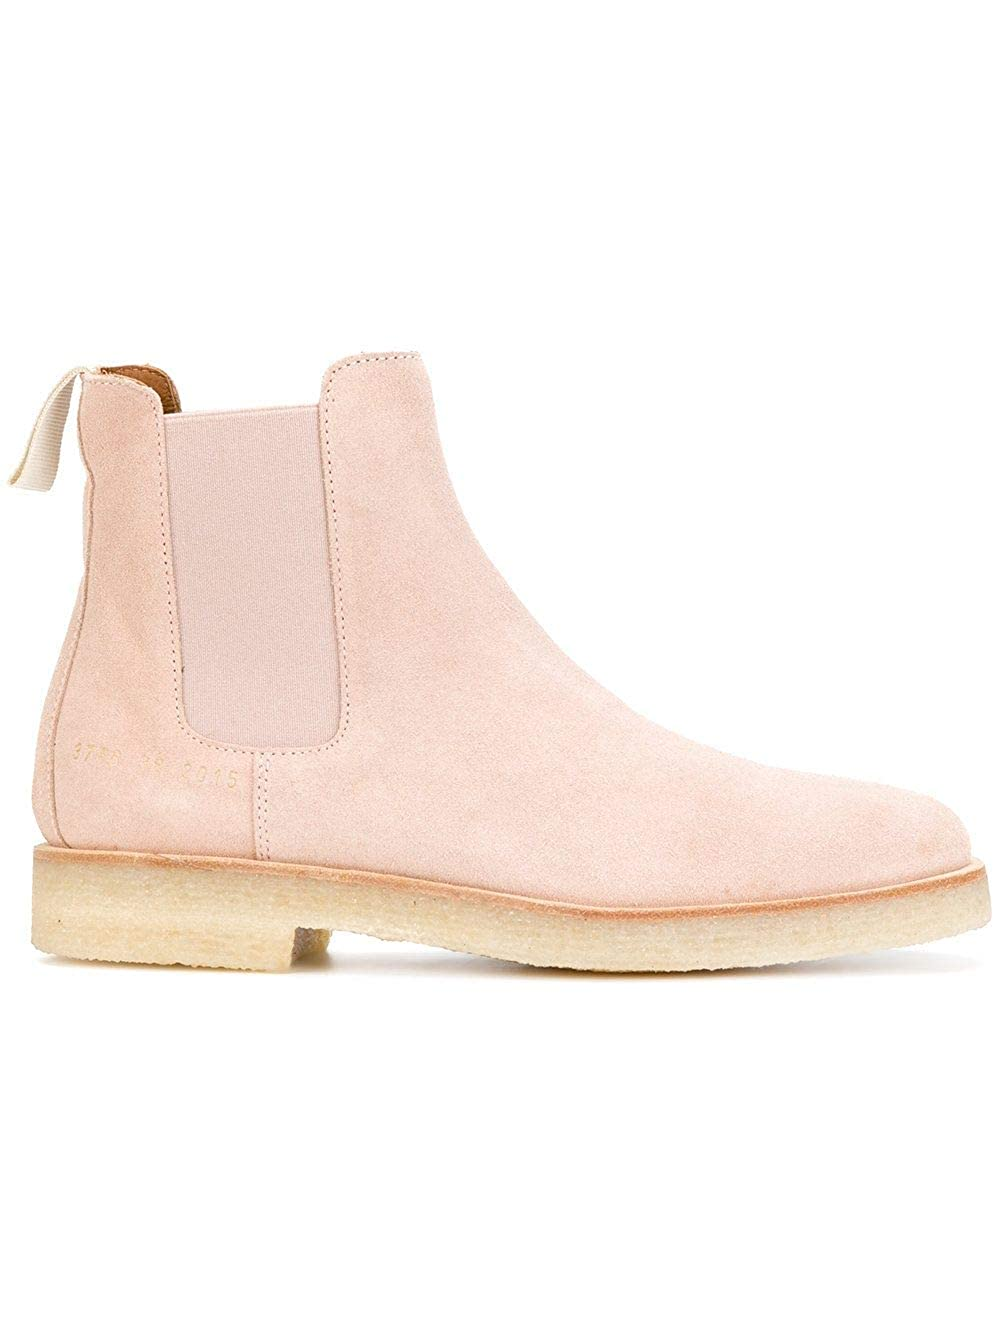 COMMON PROJECTS Damen 37782015 Rosa Wildleder Stiefeletten